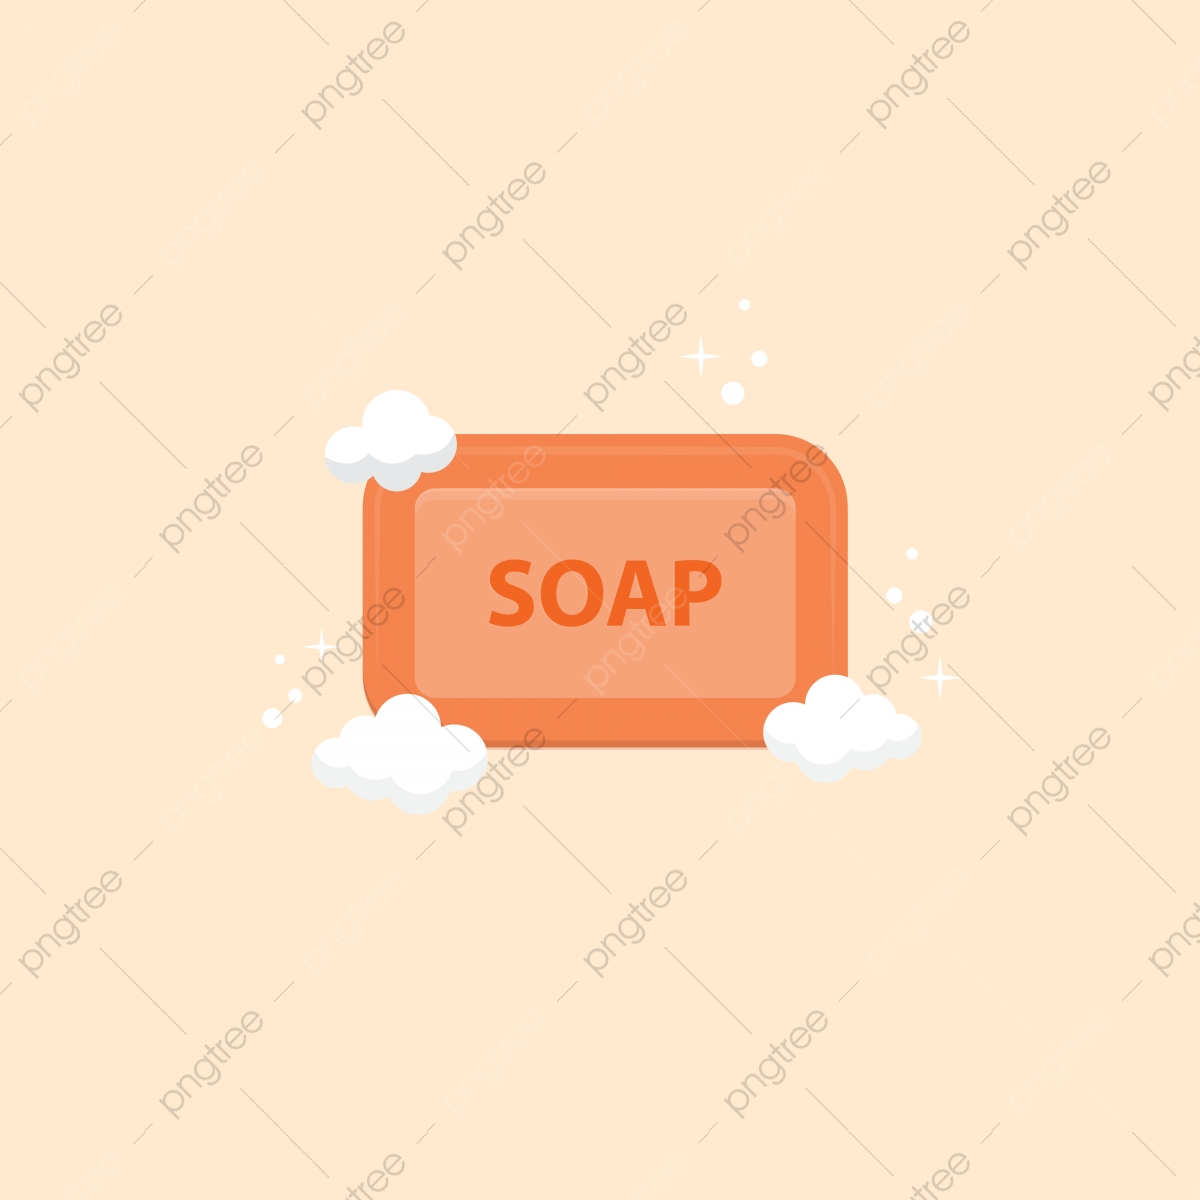 soaps vector png vector psd and clipart with transparent background for free download pngtree pngtree